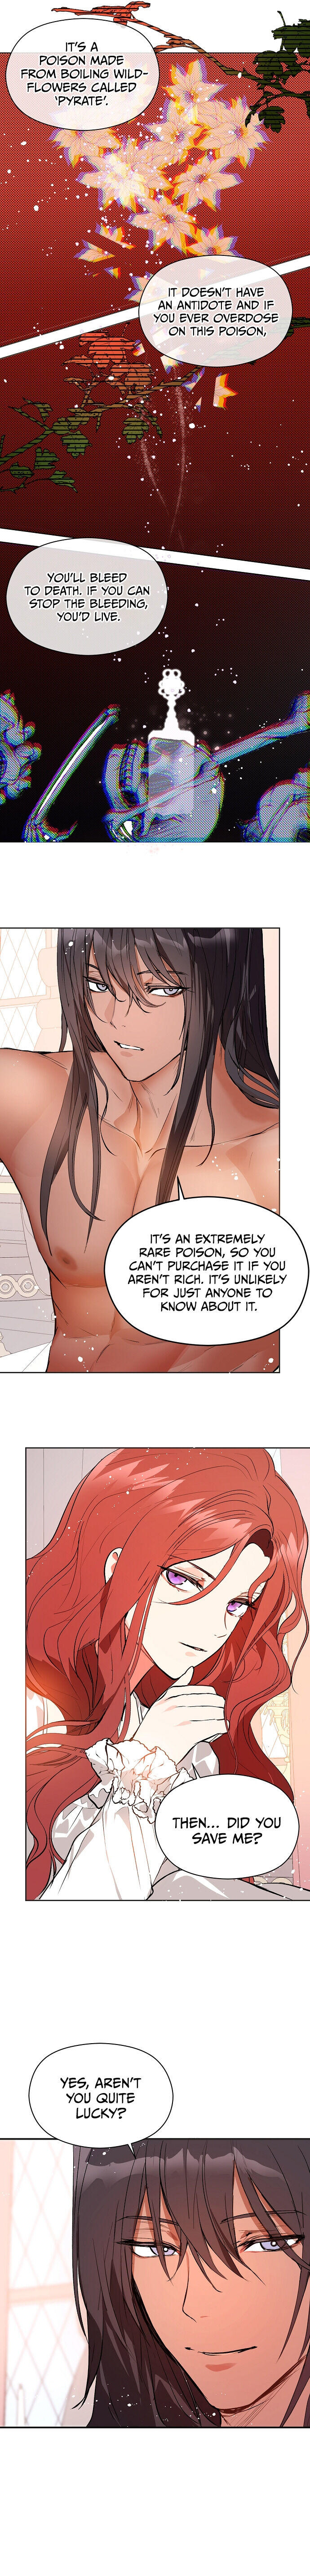 I Didn'T Mean To Seduce The Male Lead Chapter 21 page 5 - Mangakakalots.com